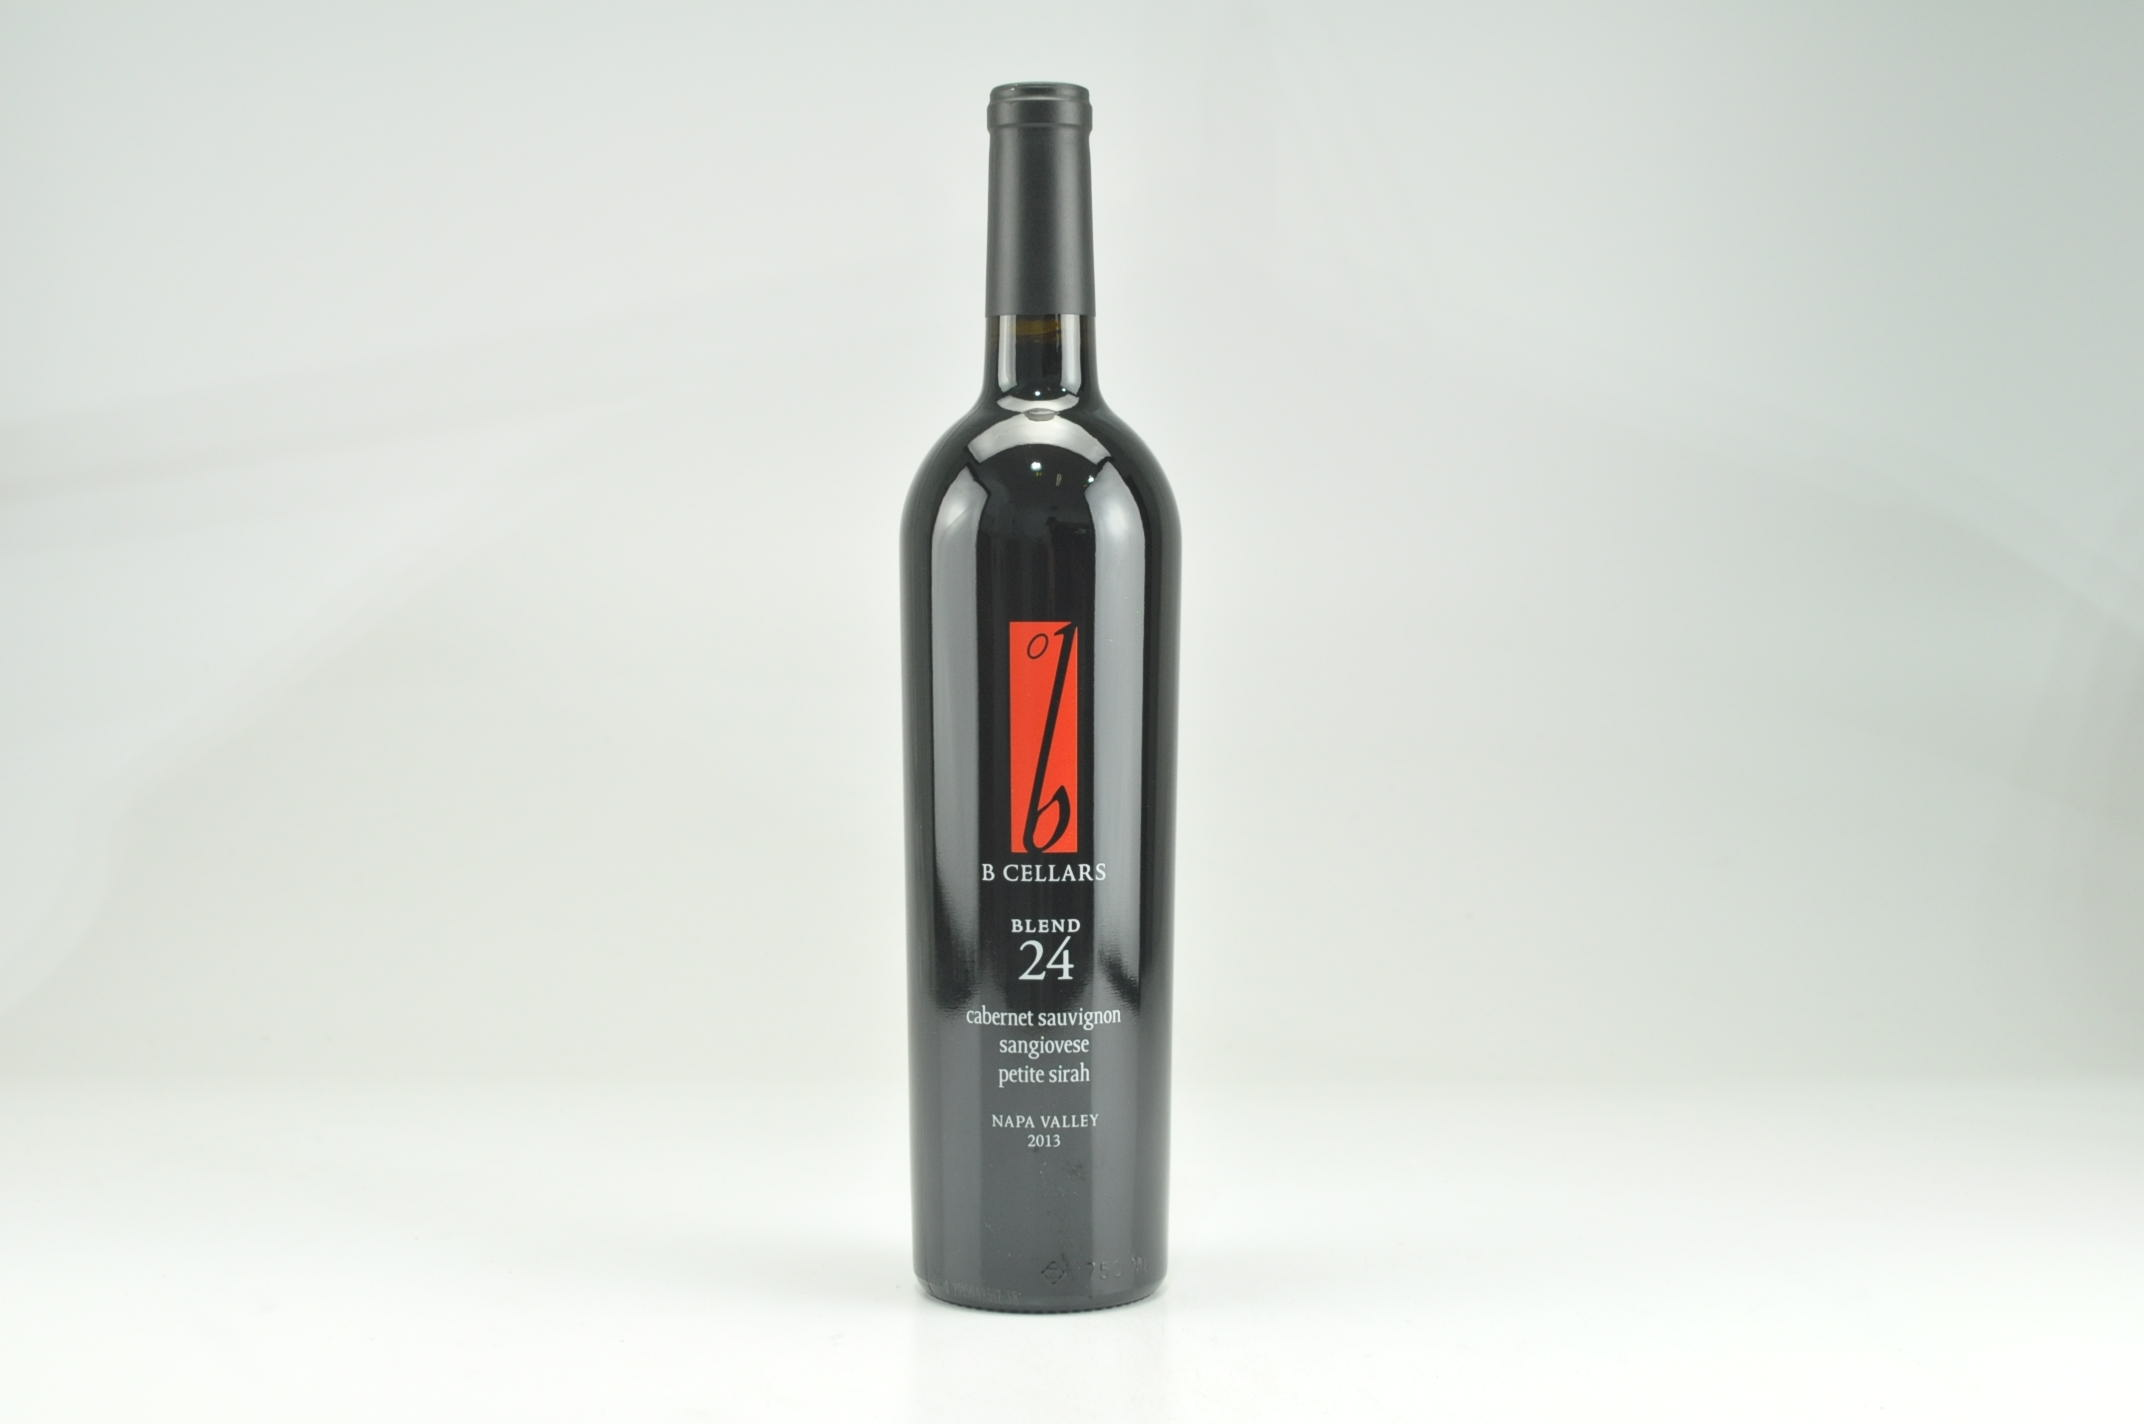 2013 B Cellars Blend 24 Red Wine RP--92